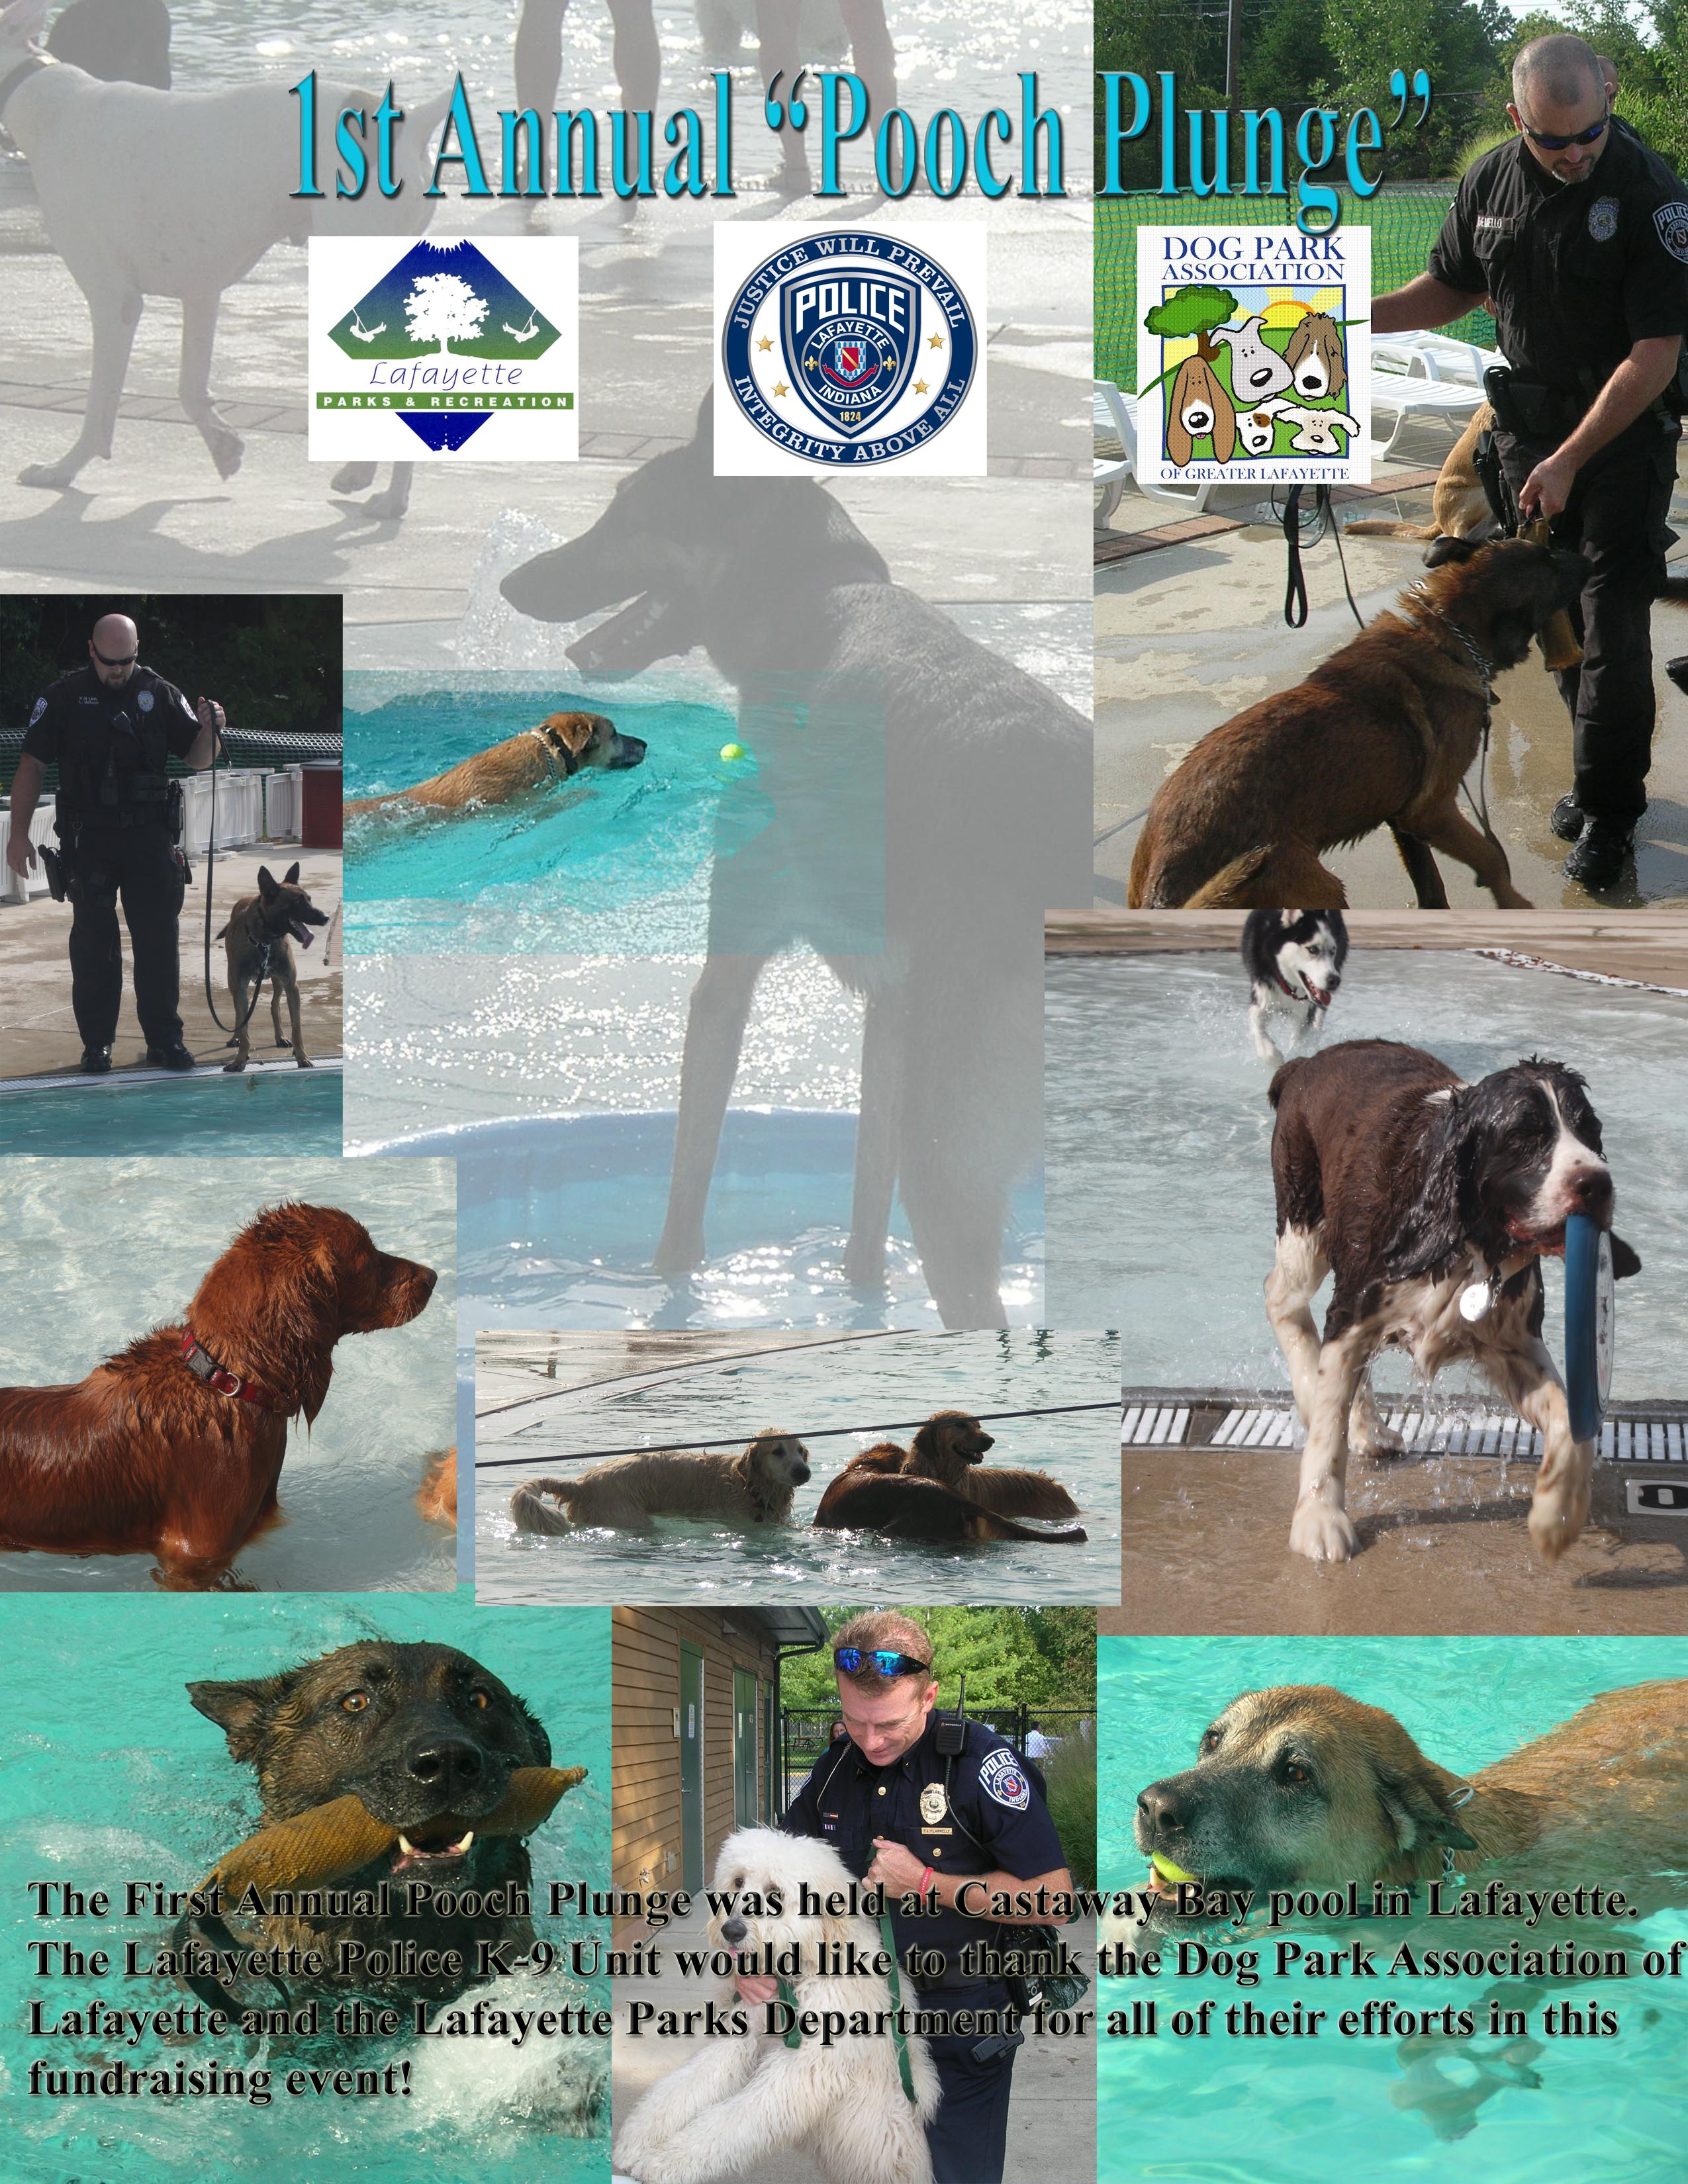 The 1st annual pooch plunge was held at Castaway Bay pool in Lafayette.